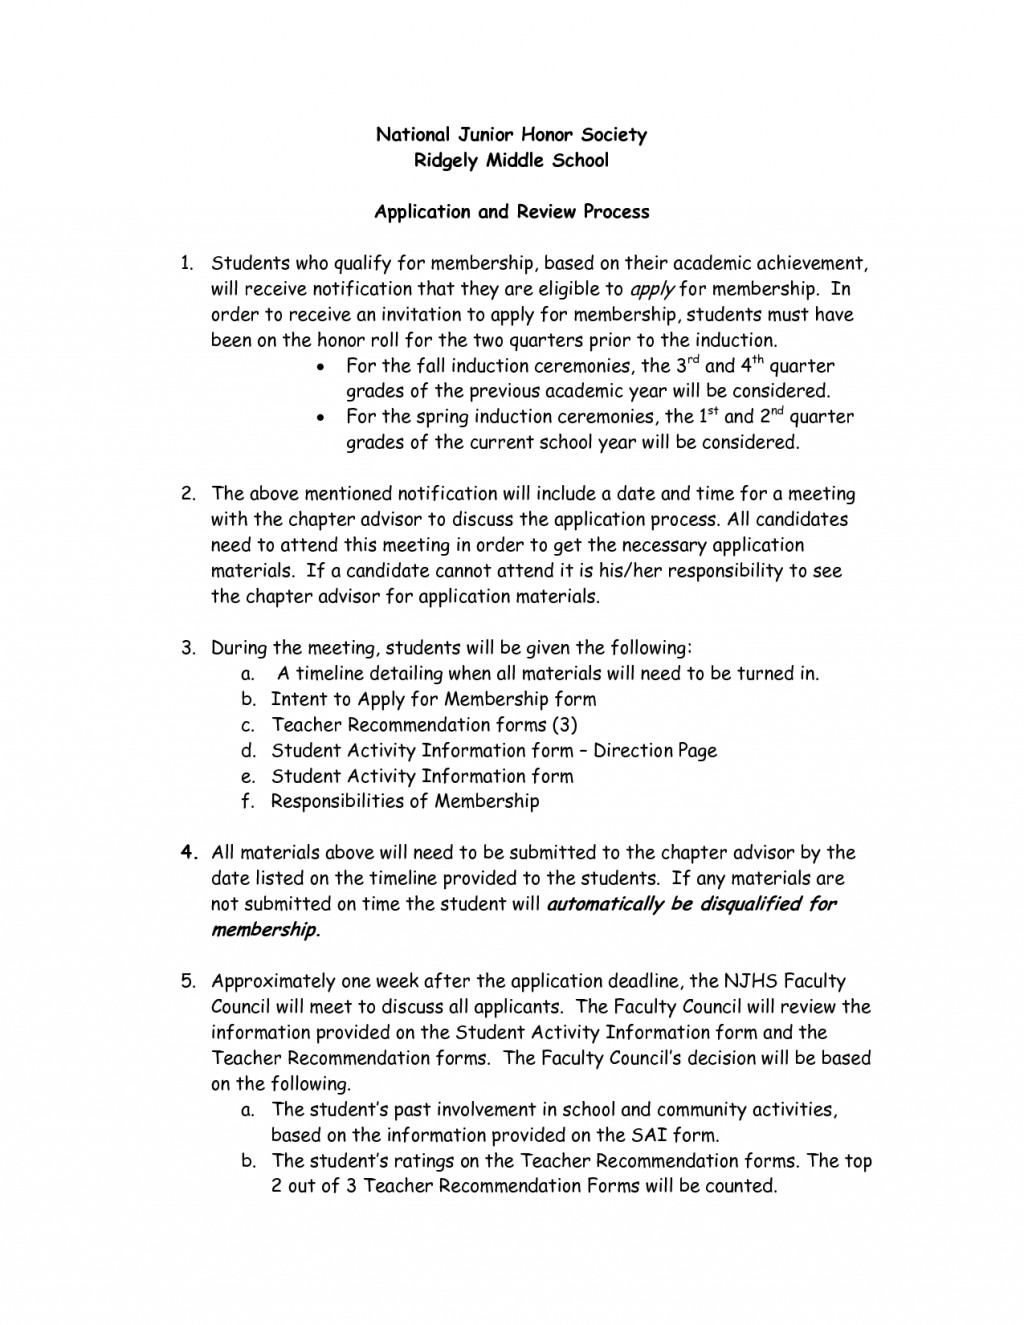 005 Essay Example National Honor Society Honors Examples Of Junior Outstanding Application Structure High School Large